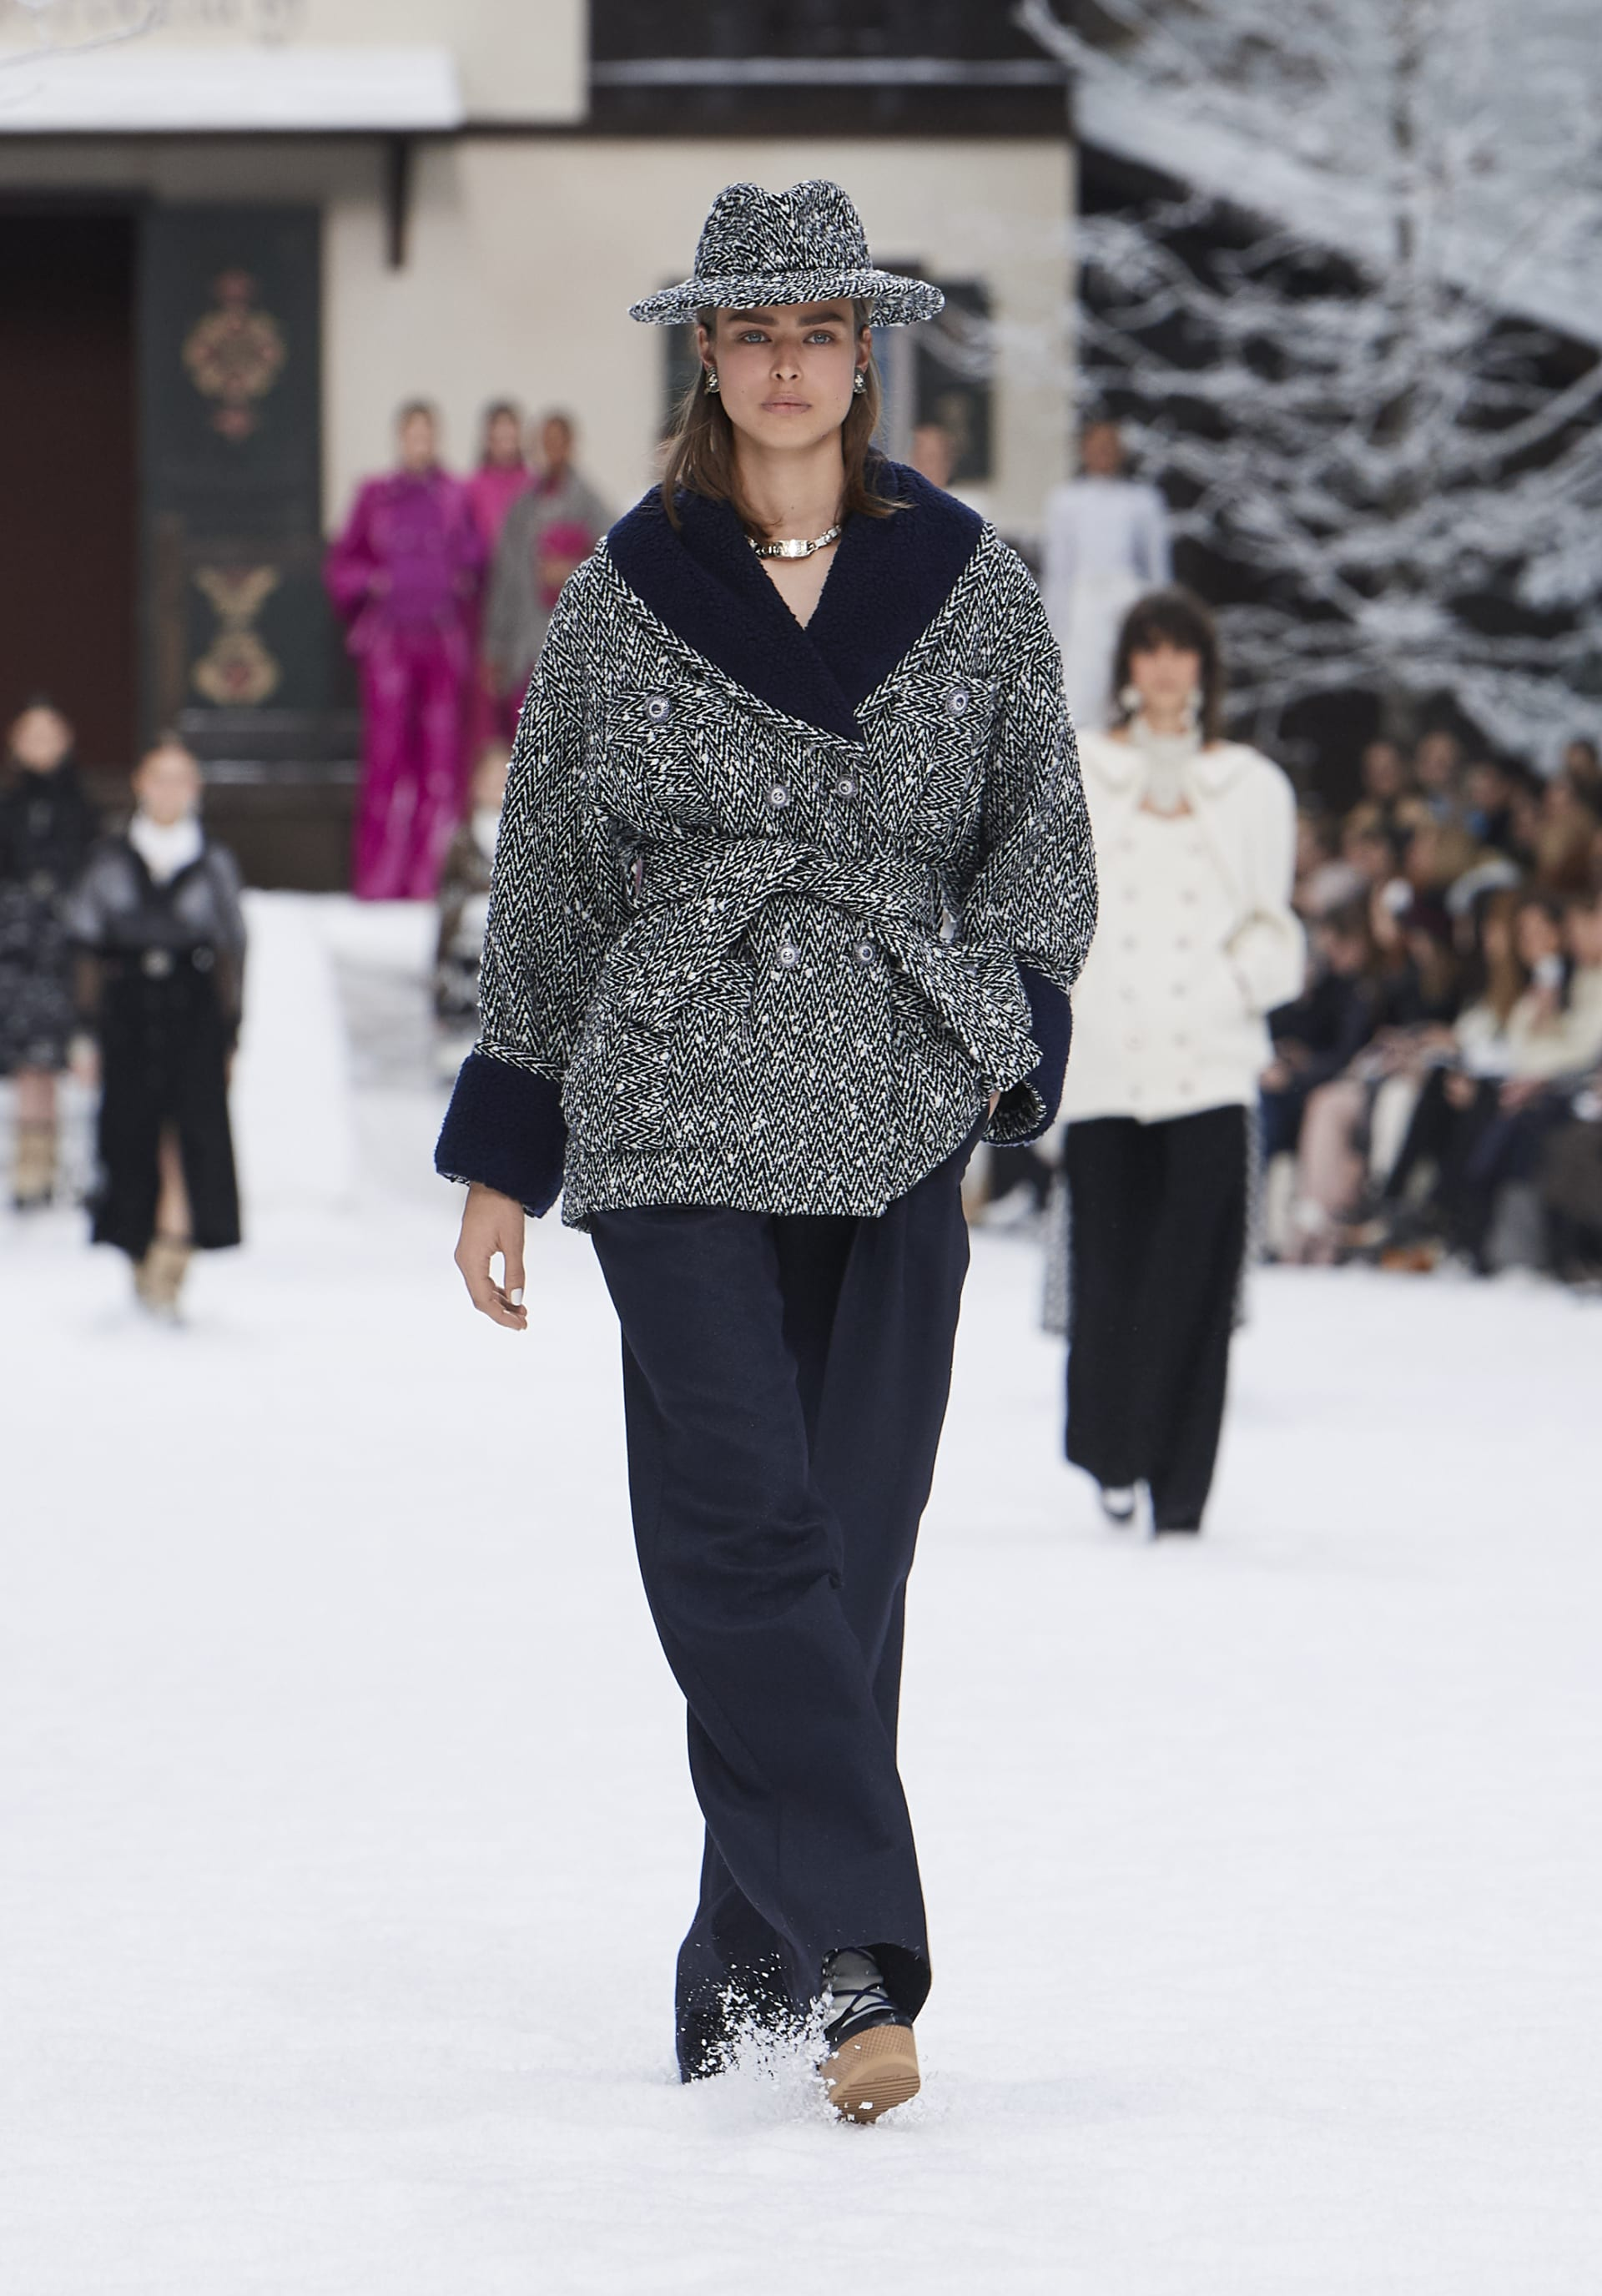 View 1 - Look 11 - Fall-Winter 2019/20